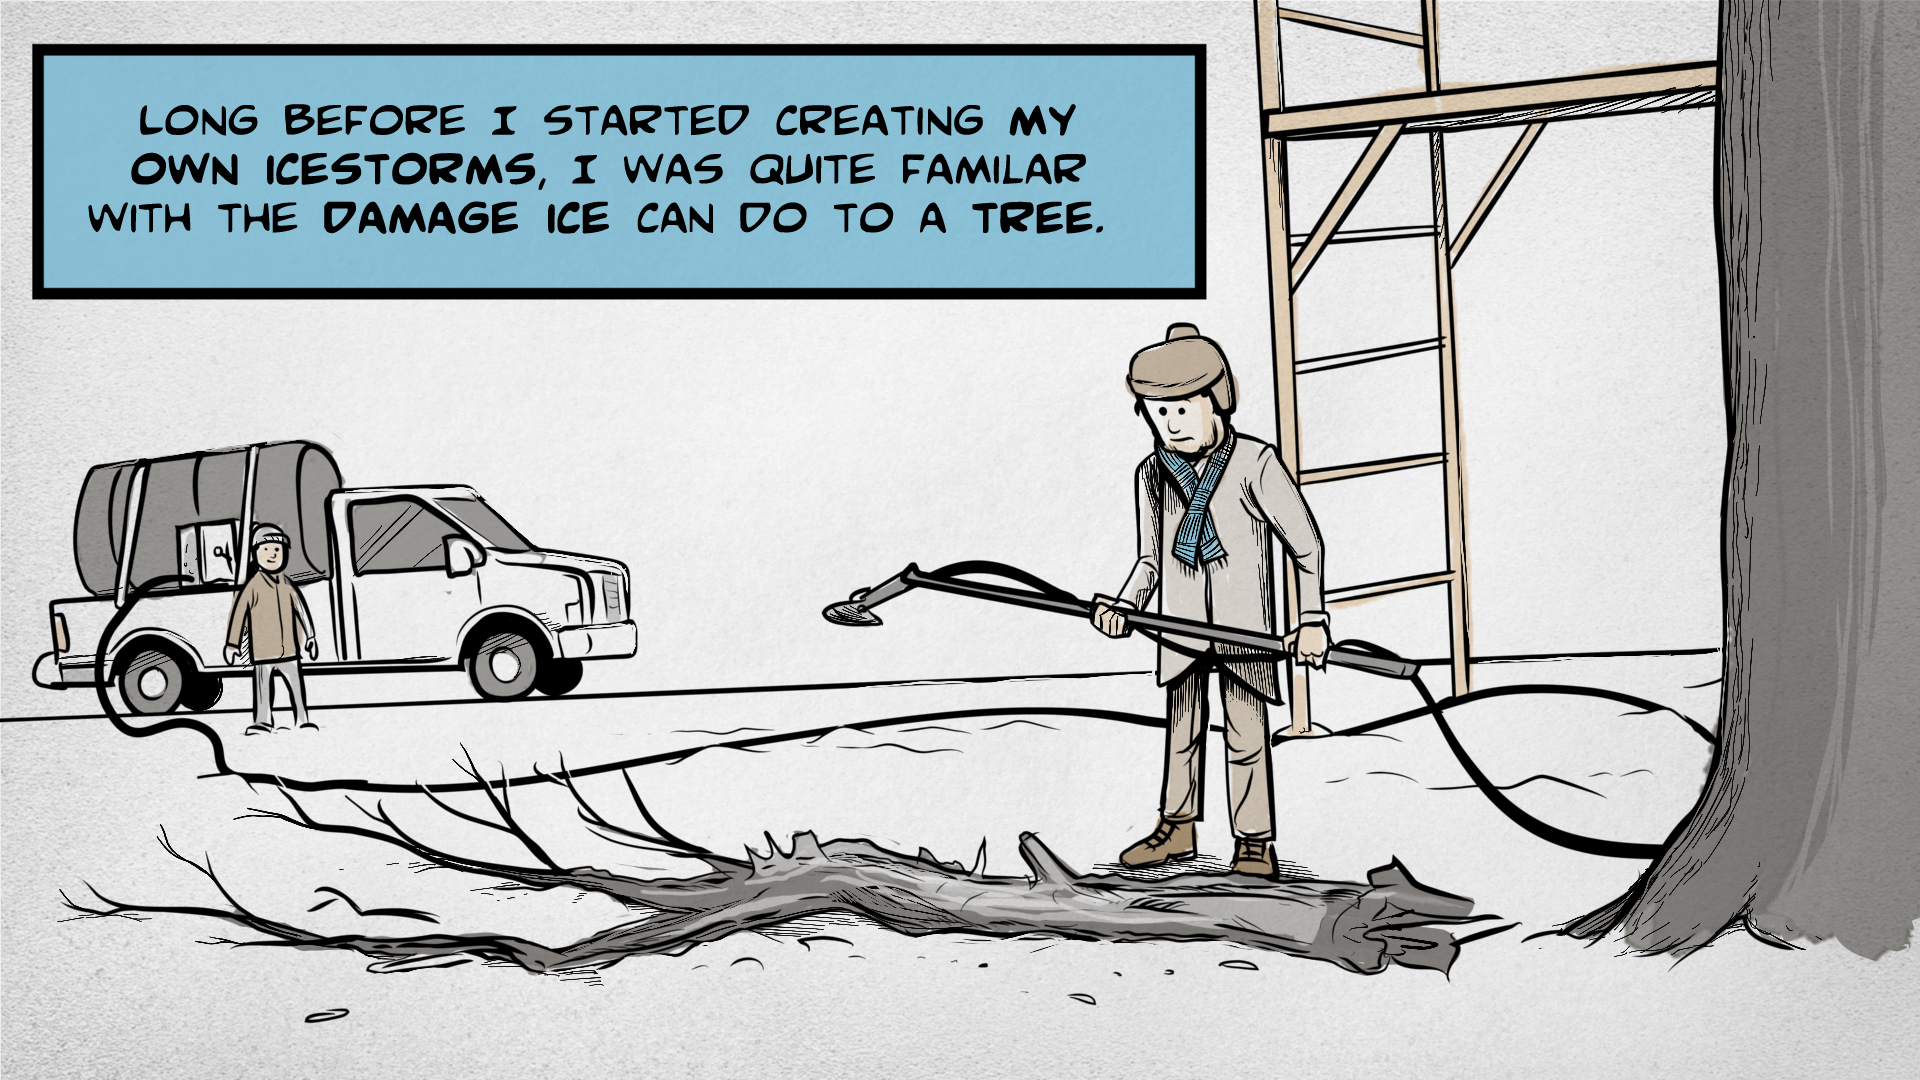 "Danny, the narrator, says, ""Long before I started creating my own ice storms, I was quite familiar with the damage ice can do to a tree."" He stands in a snowy landscape holding a pole and a hose, looking down at a large branch that has broken off a tree. In the background, a person waits next to a tank truck."